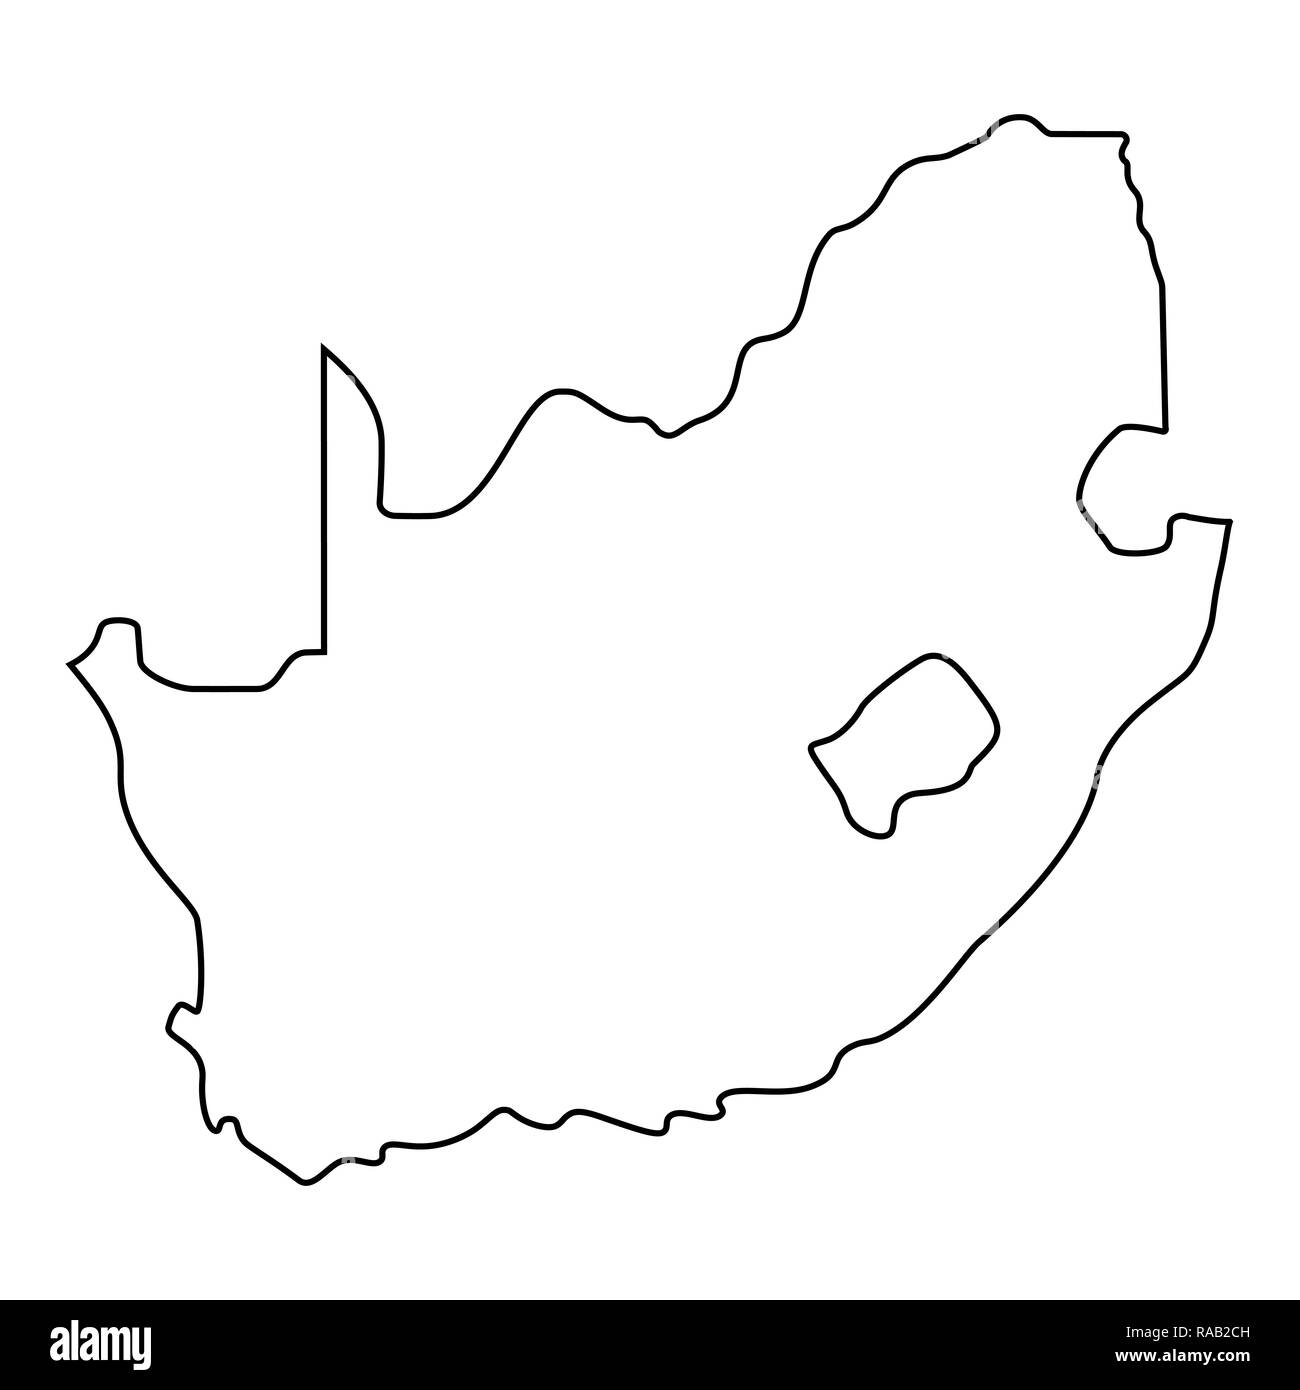 Outline Of Africa Map.Map Of South Africa Outline Silhouette Of South Africa Map